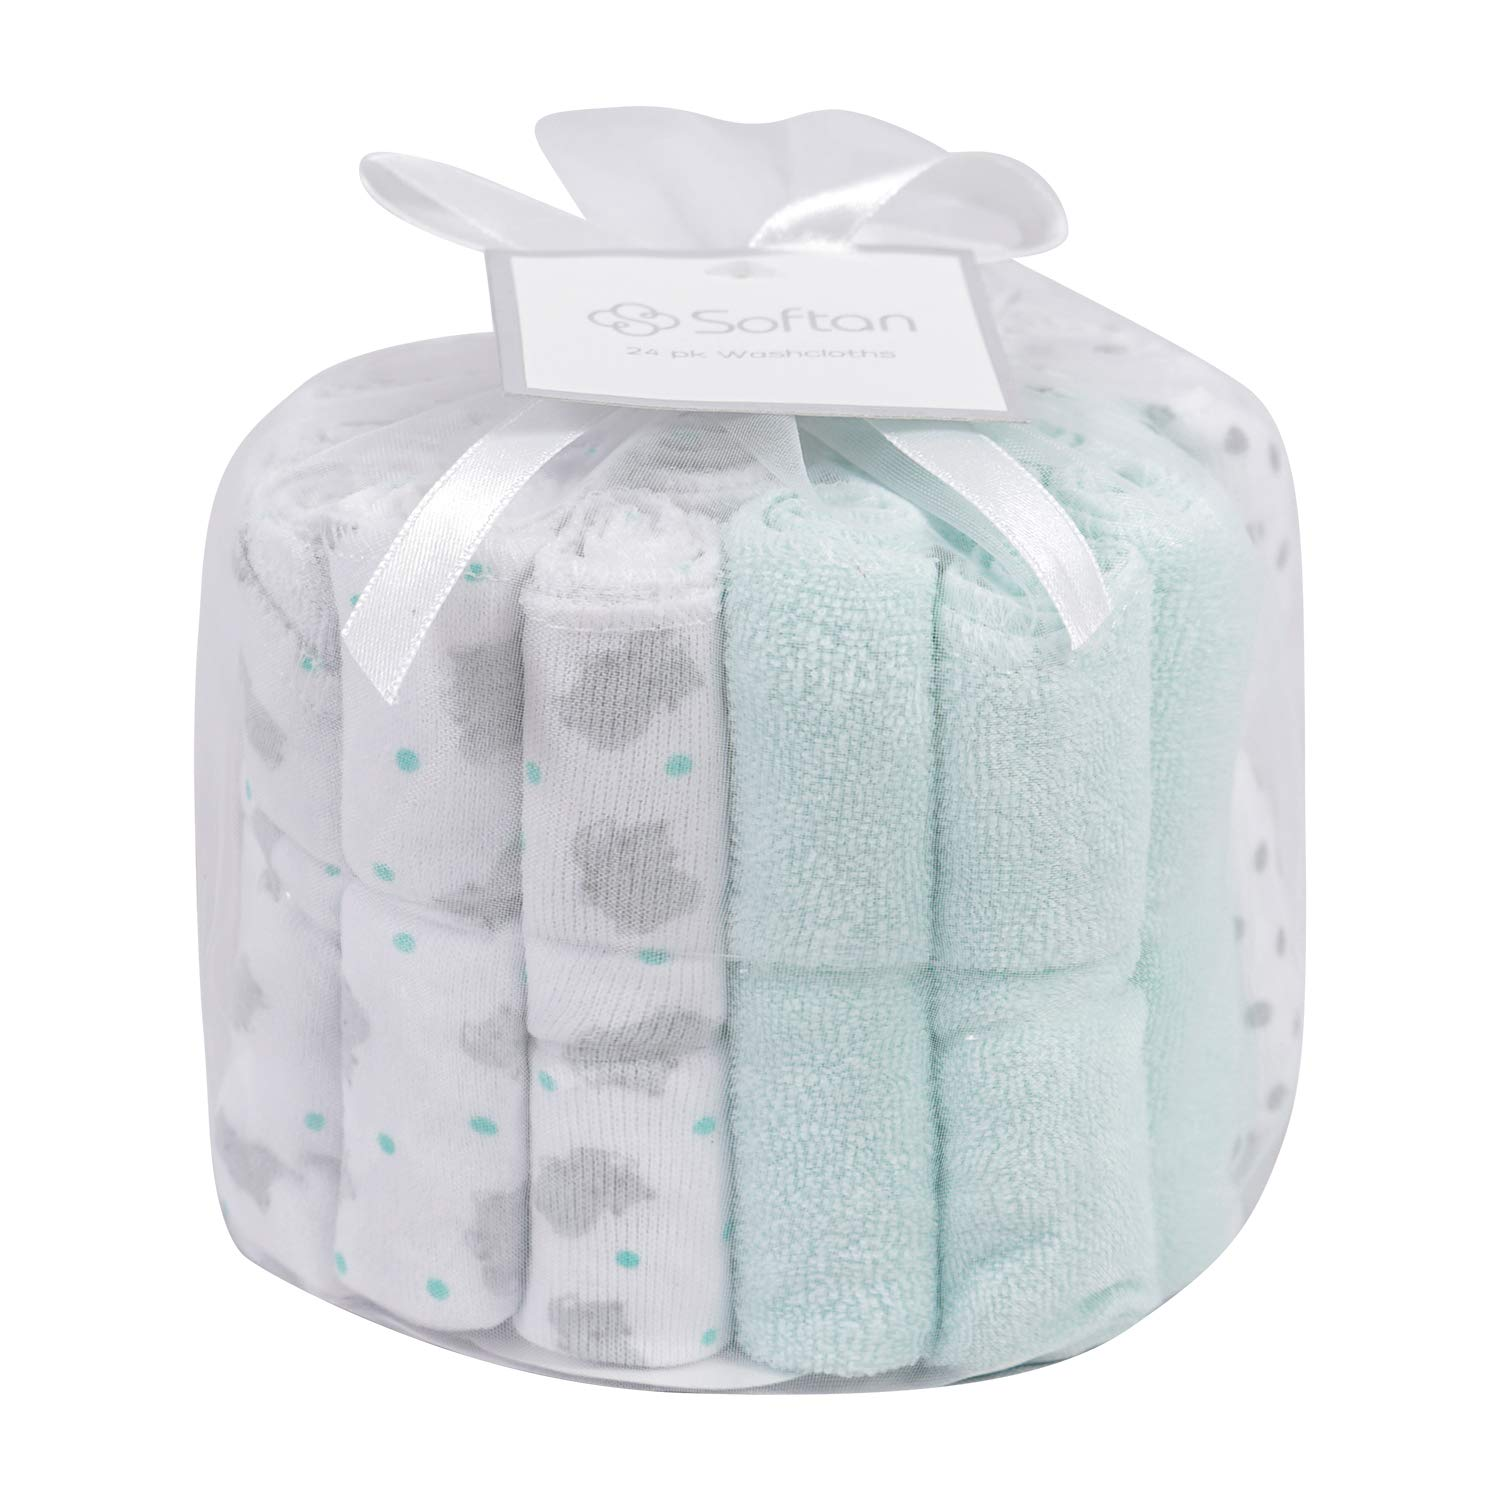 24 Pack Extra Soft and Ultra Absorbent Bath Towel Great Gifts for Newborn and Infants Baby Washcloths